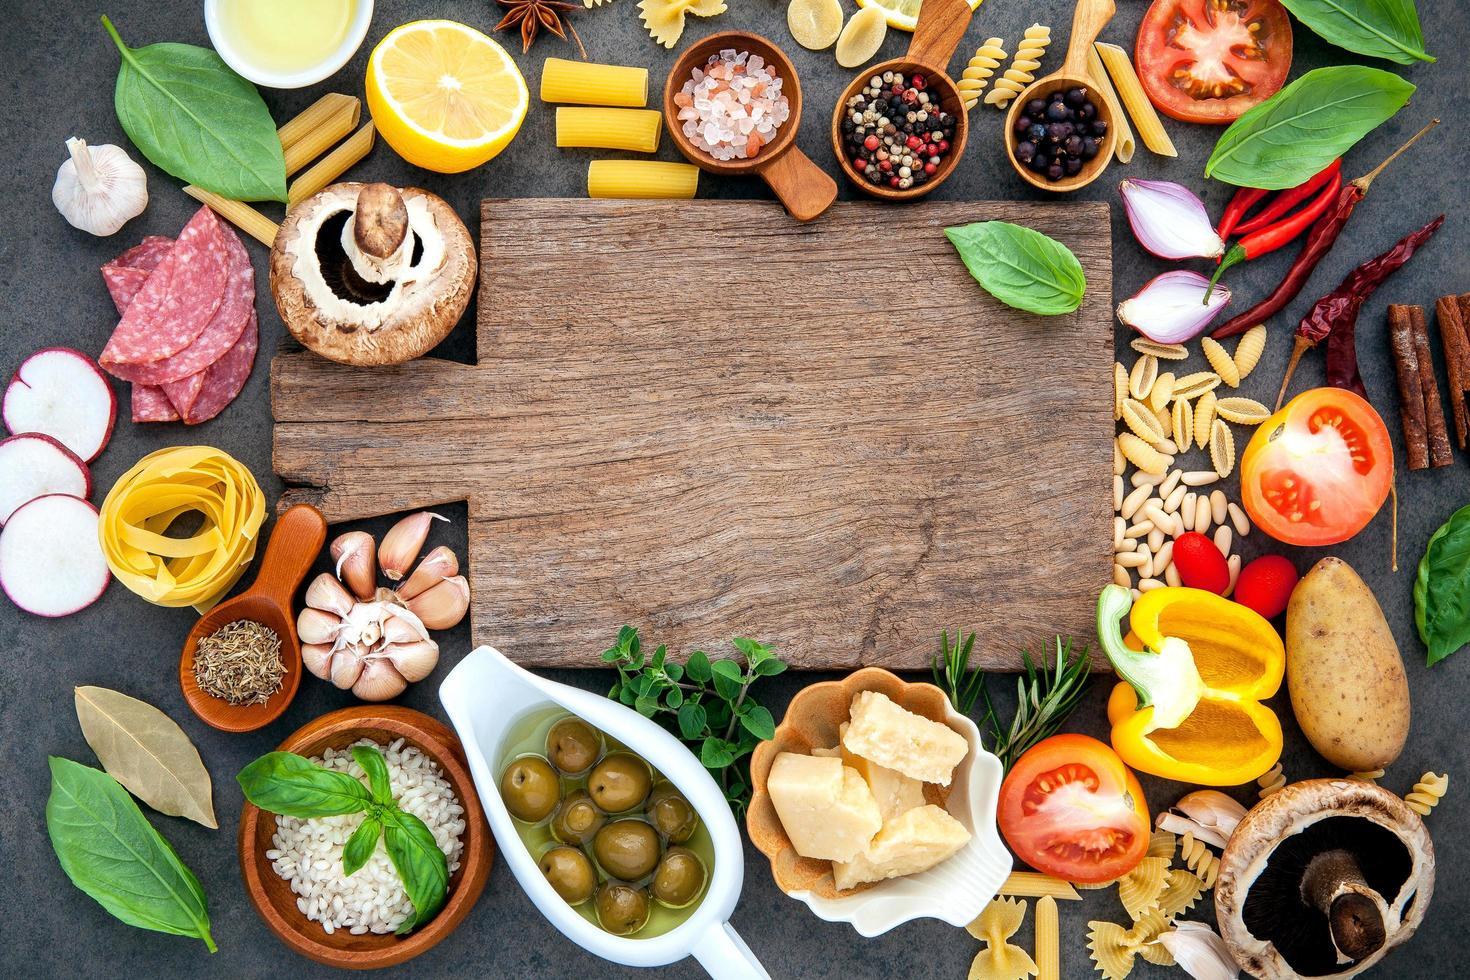 Cooking ingredients with a cutting board photo